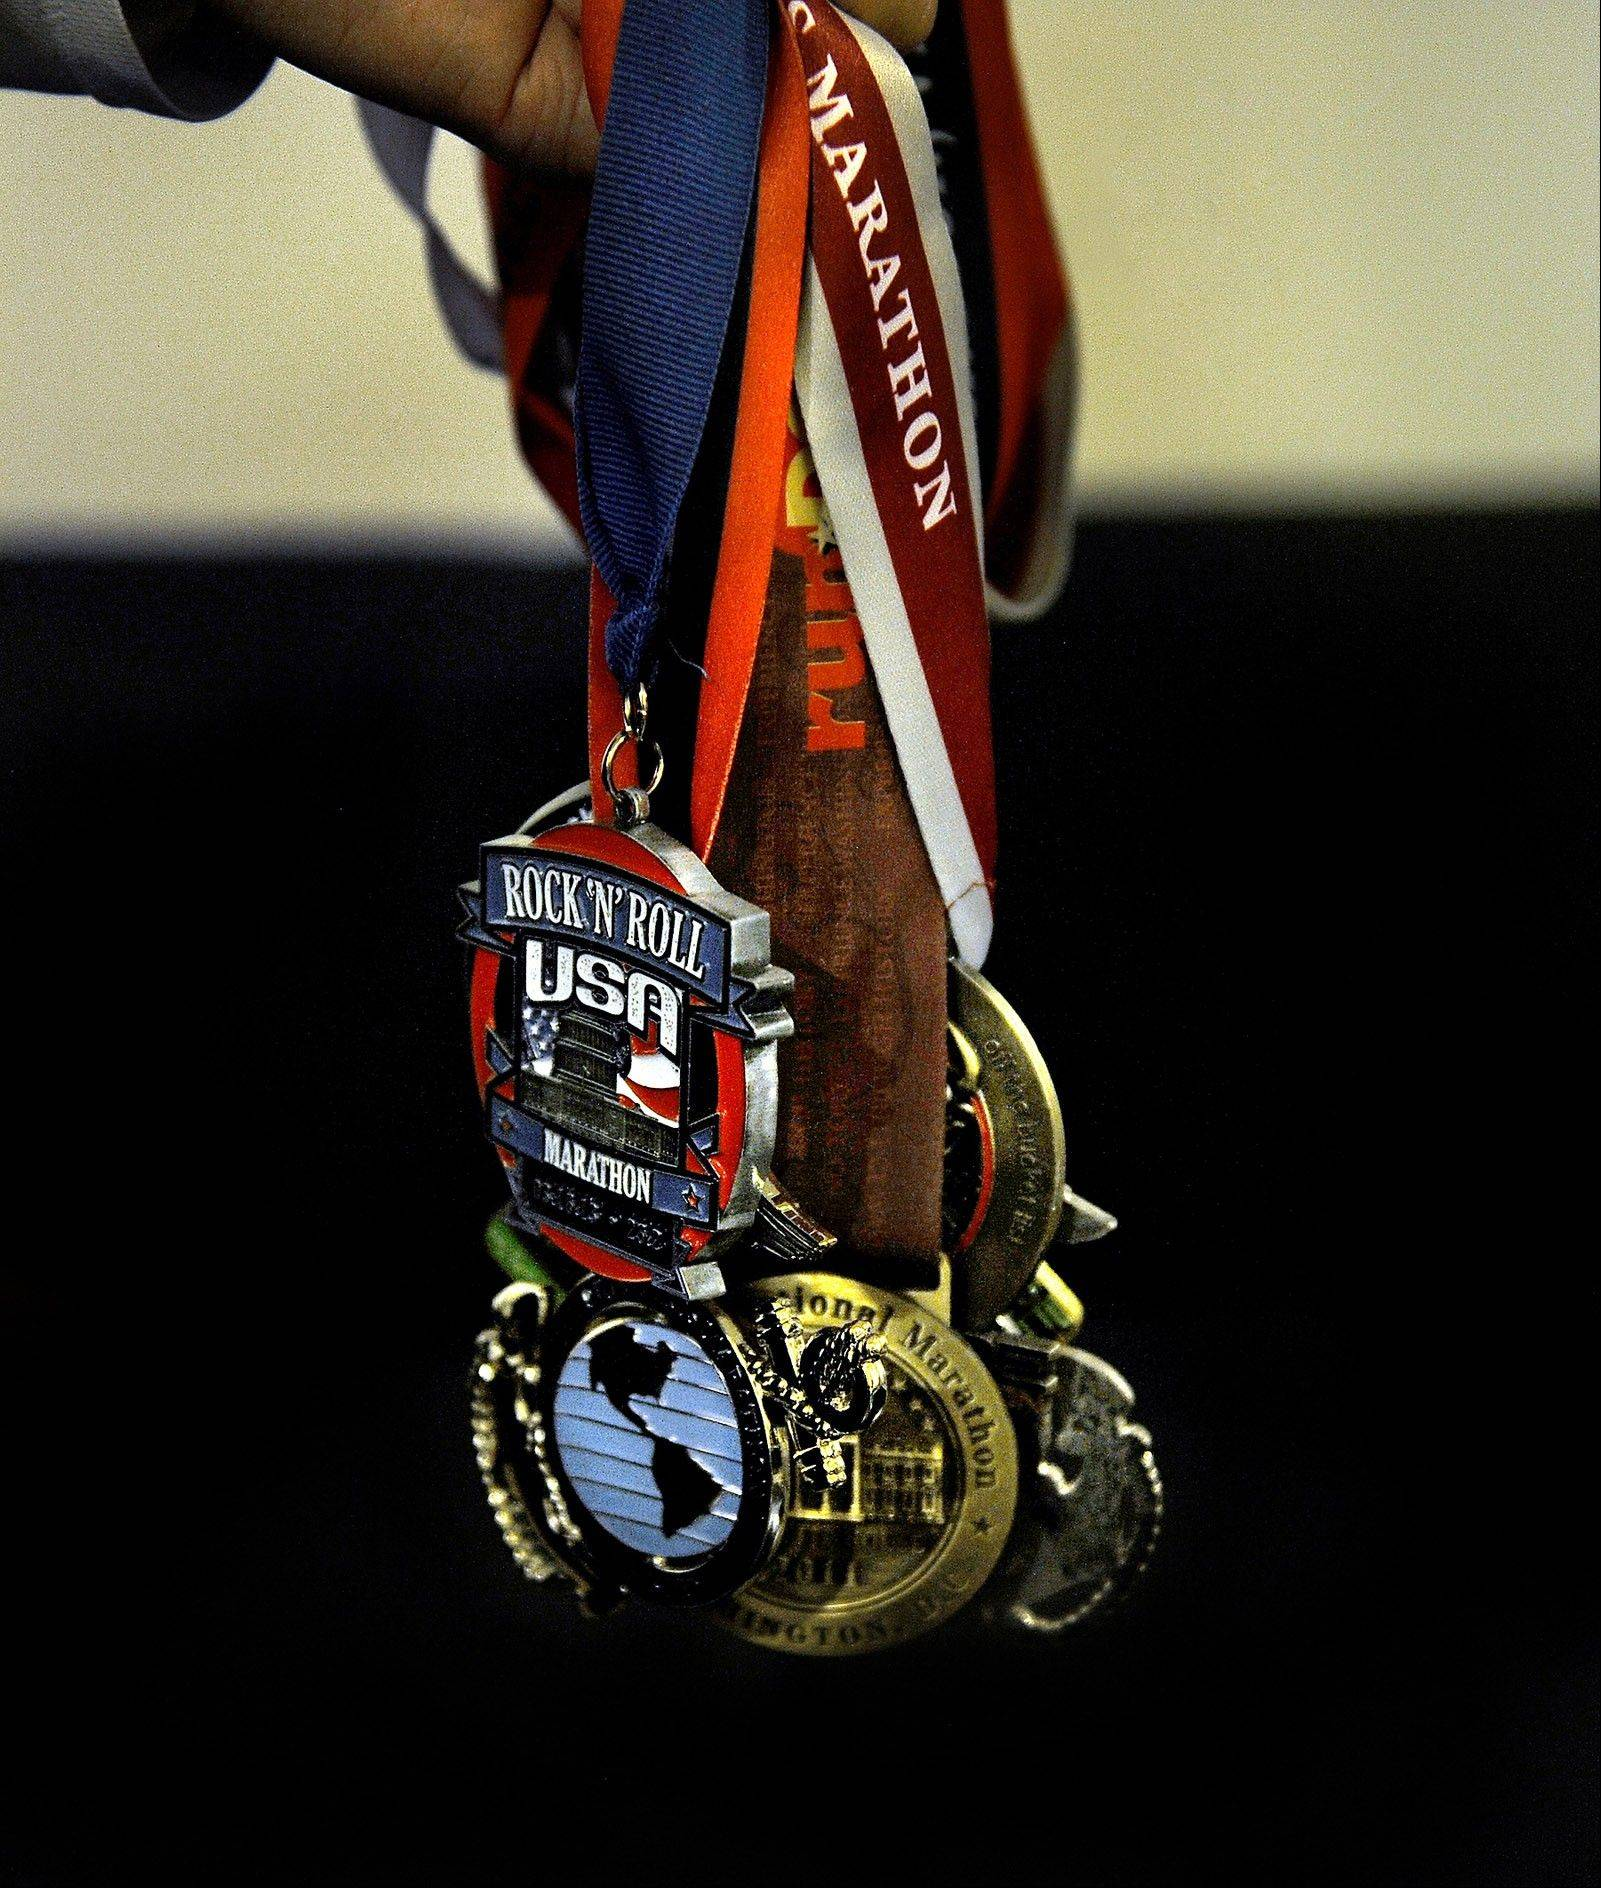 Walter Barrera shows some of the running event medals he's collected from his various long distance competitions.